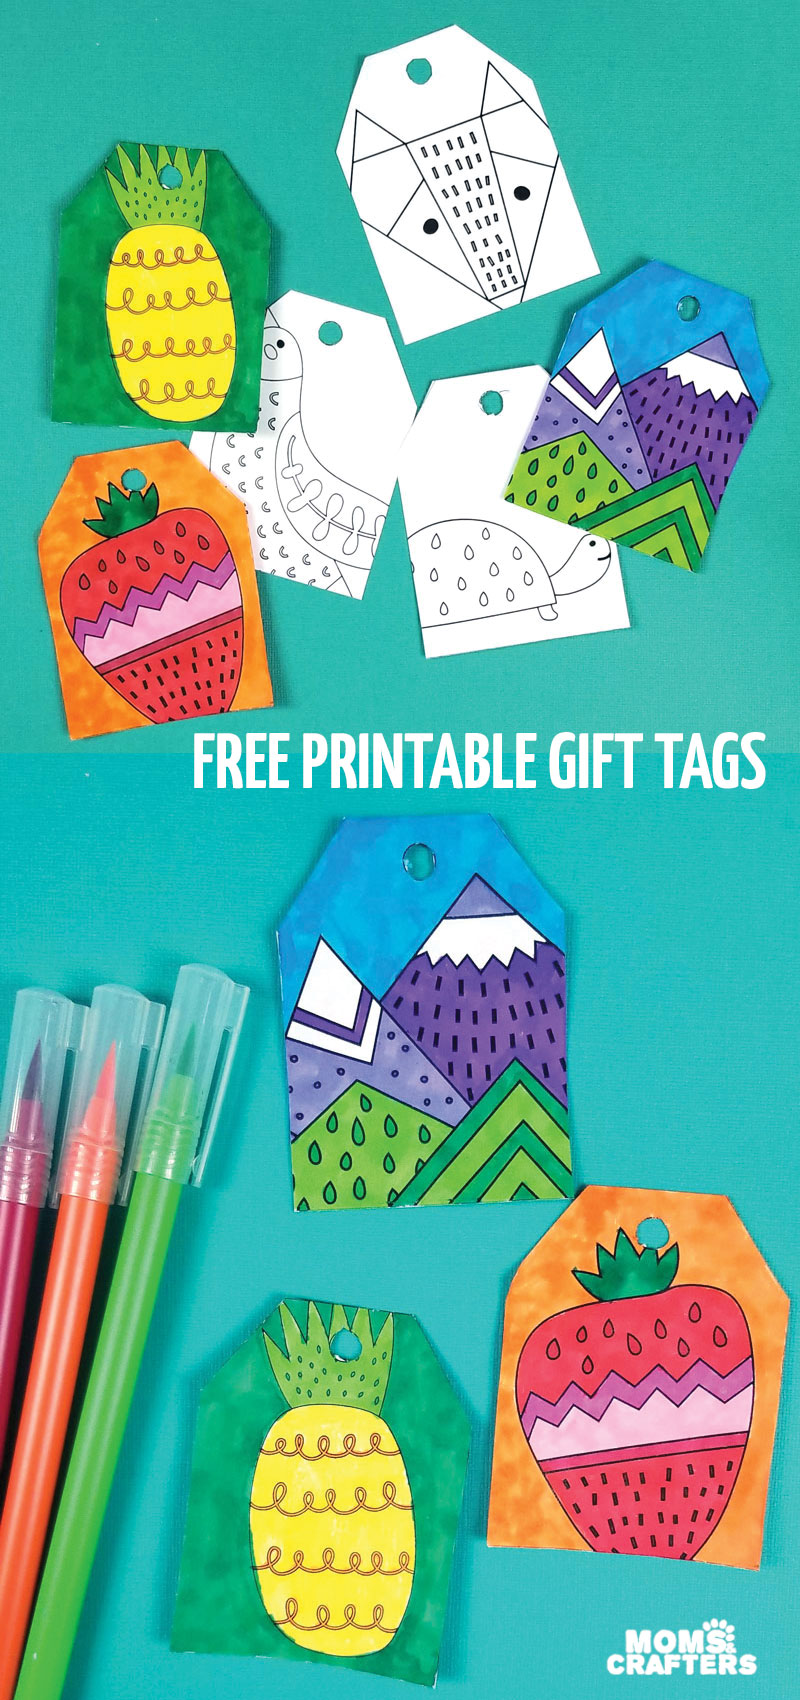 Click to download free printable gift tags to color and craft! These fun coloring pages make great Hanukkah and Christmas crafts for tweens and teens, and are cool coloring pages for kids and adults.